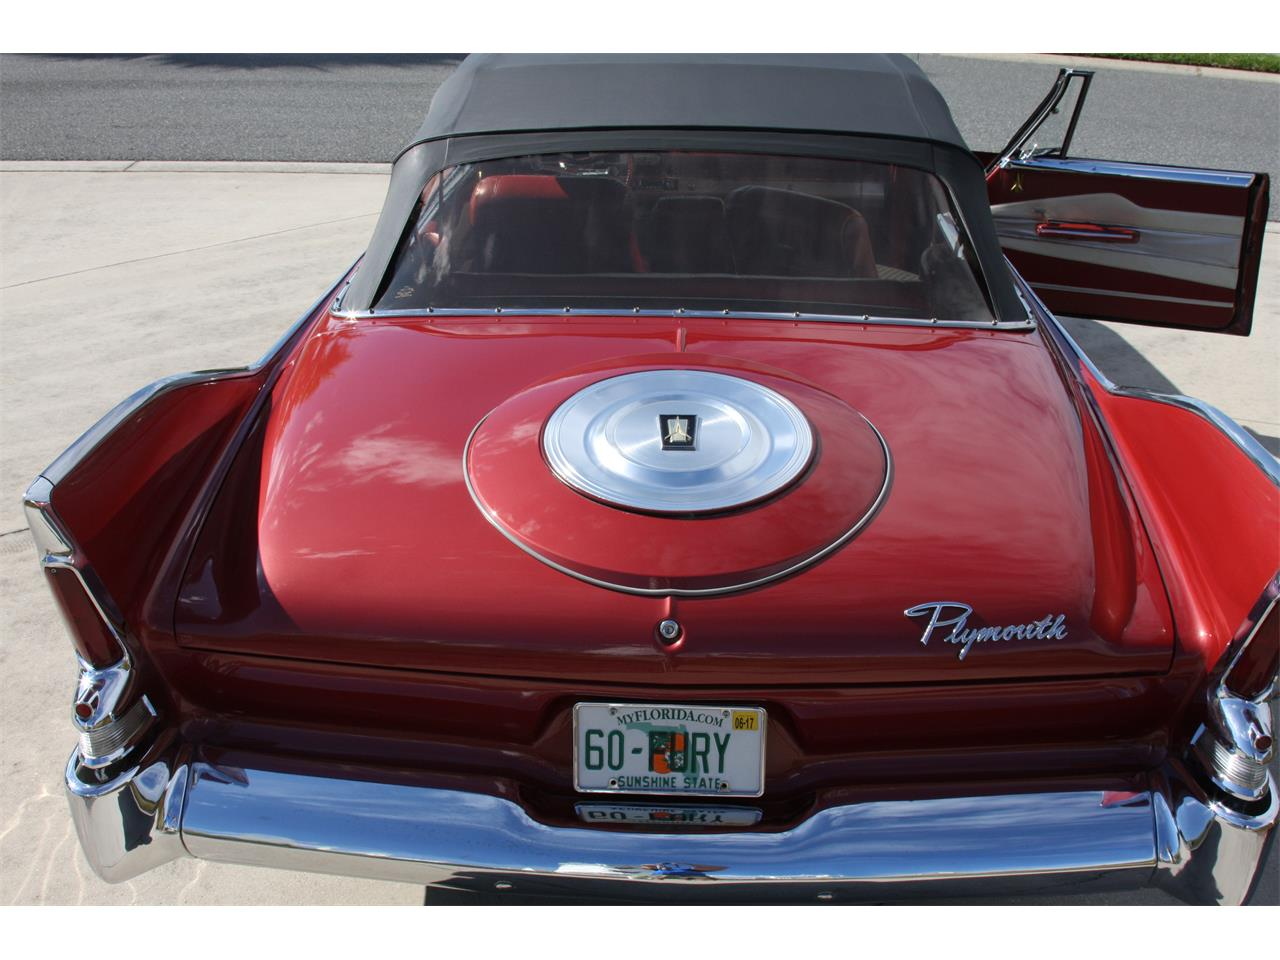 Large Picture of '60 Plymouth Fury located in Florida - $66,000.00 Offered by a Private Seller - K9KS